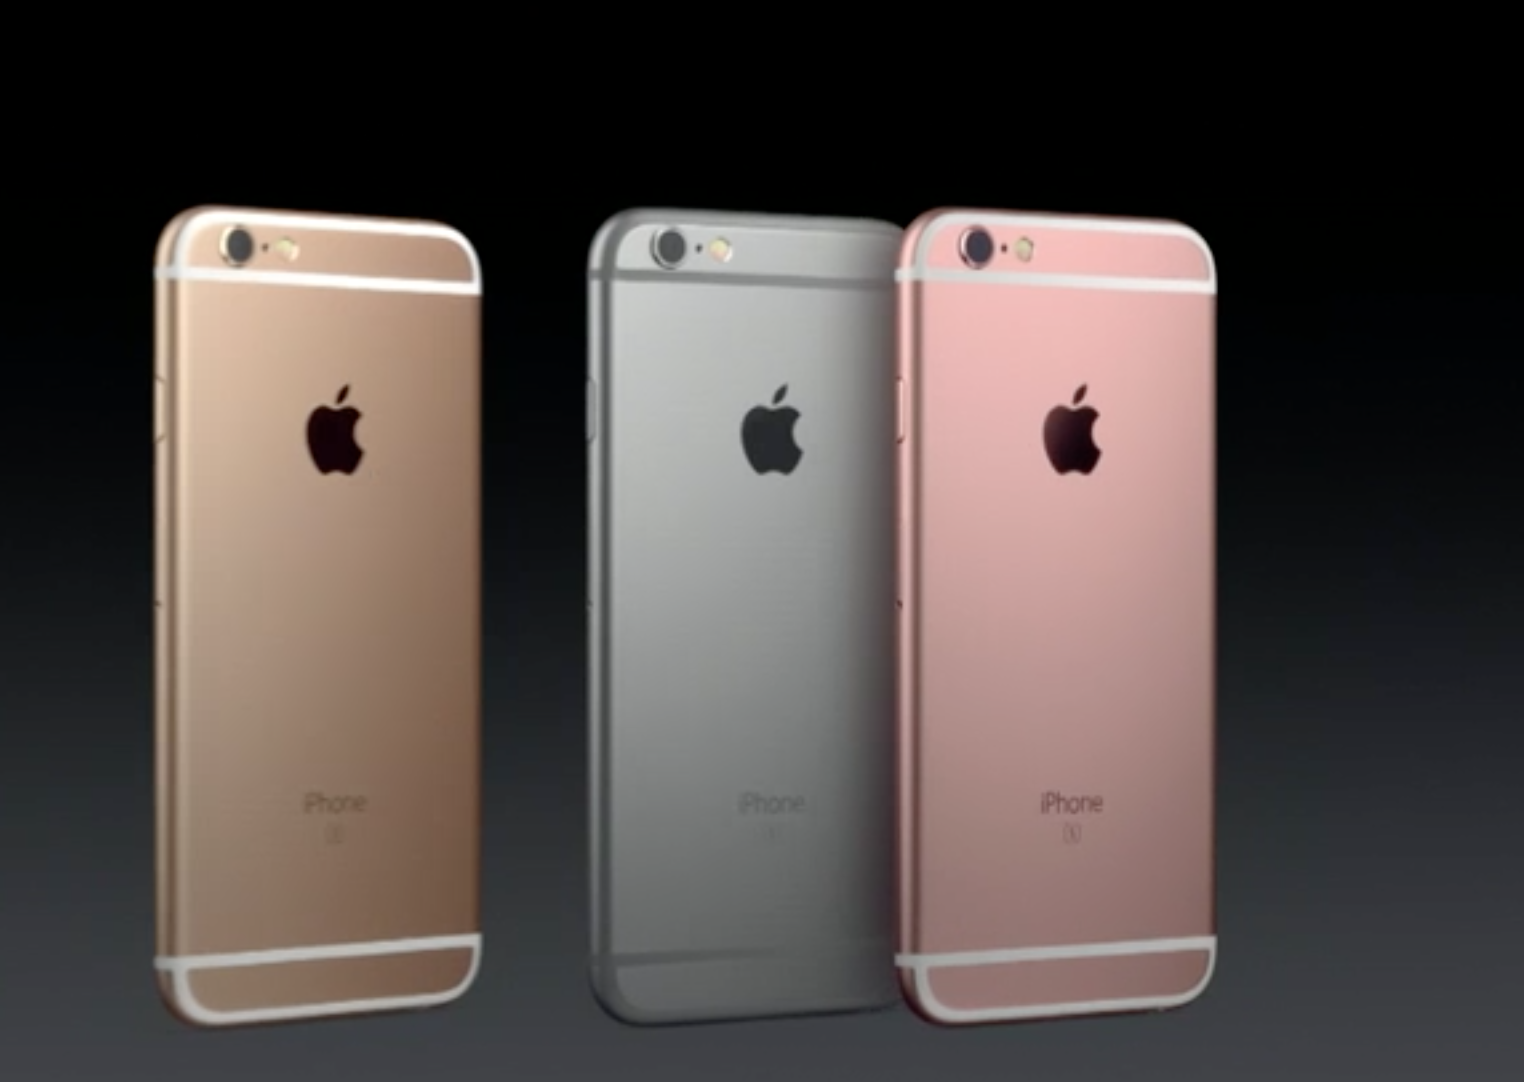 iphone 6s features the apple iphone 6s amp iphone 6s plus 12mp cameras 1086